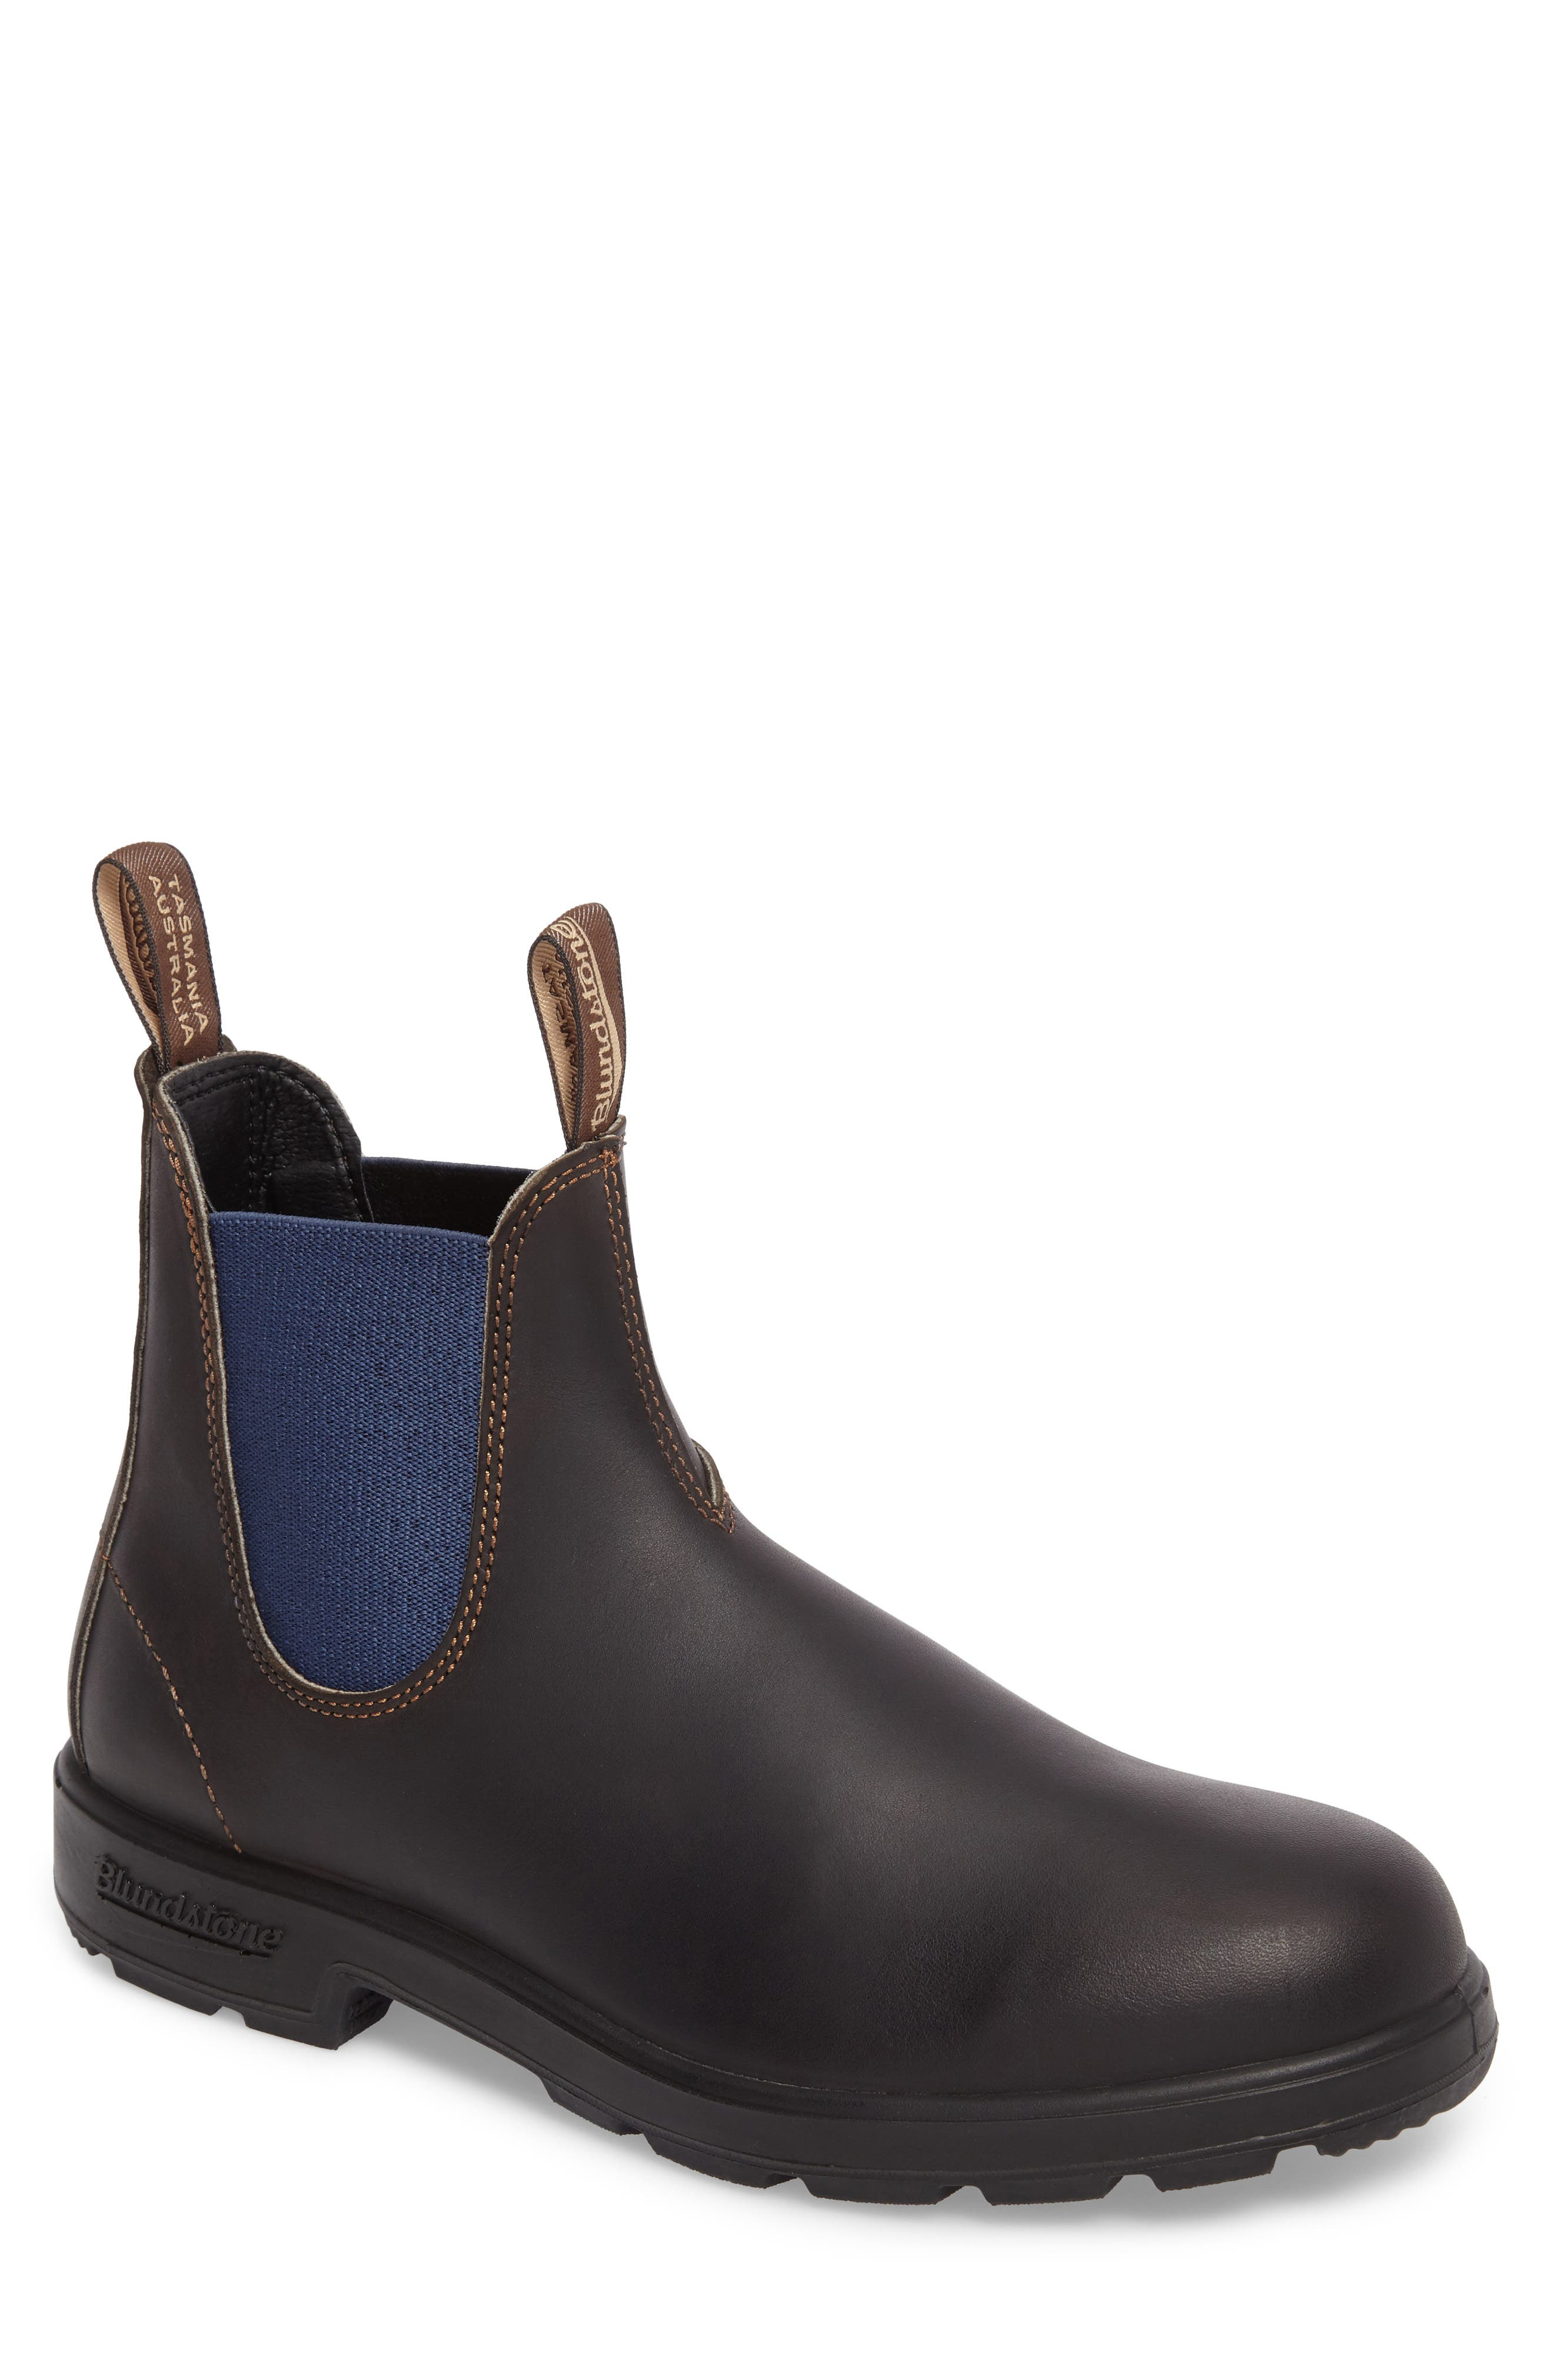 BLUNDSTONE Chelsea Boot in Brown/ Blue Leather